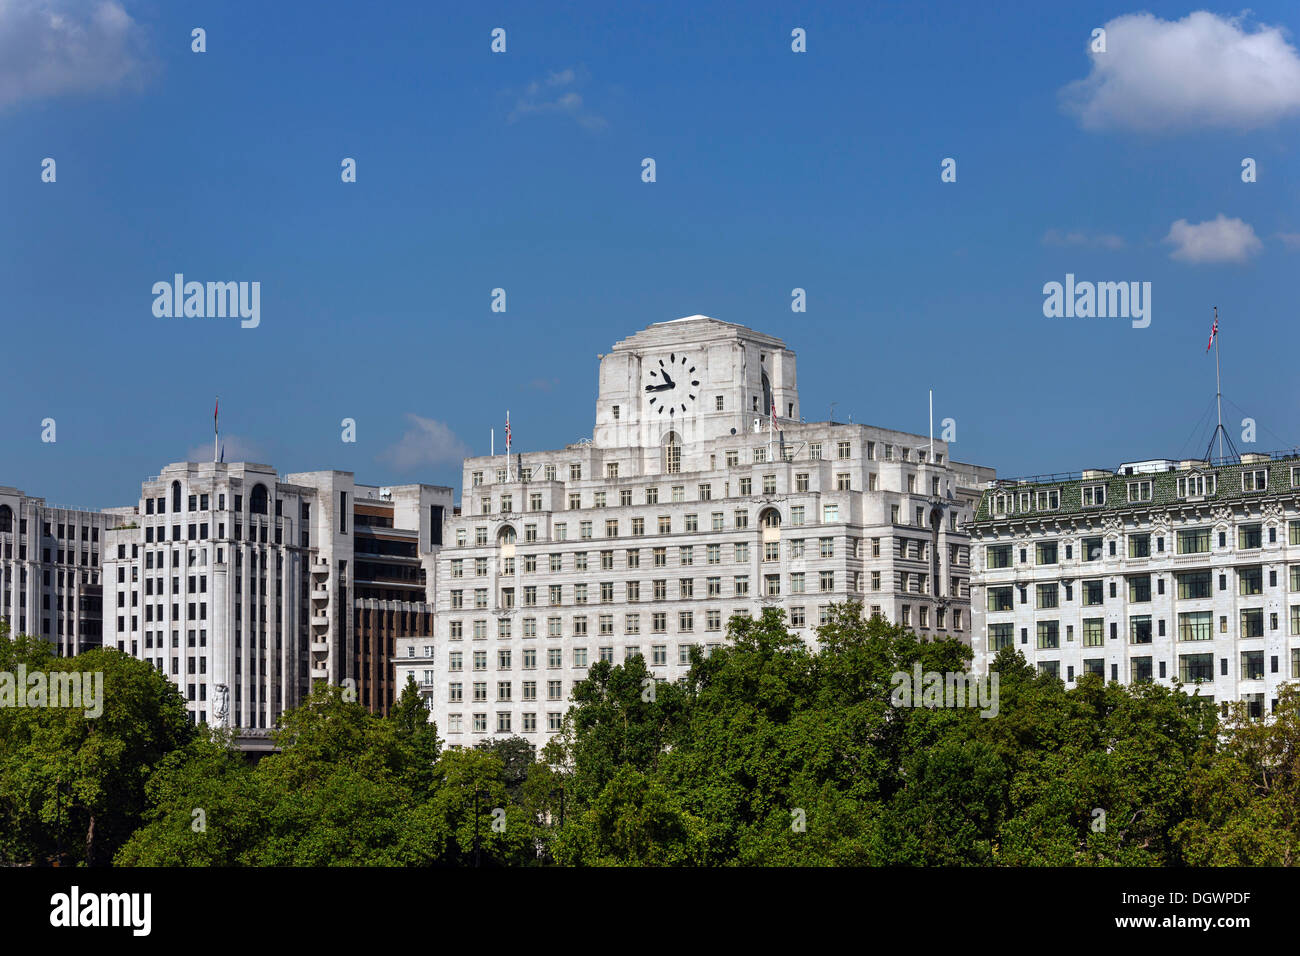 Adelphi building, Shell Mex House and Savoy Hotel on the north bank of the Thames, London, England, United Kingdom, Europe - Stock Image